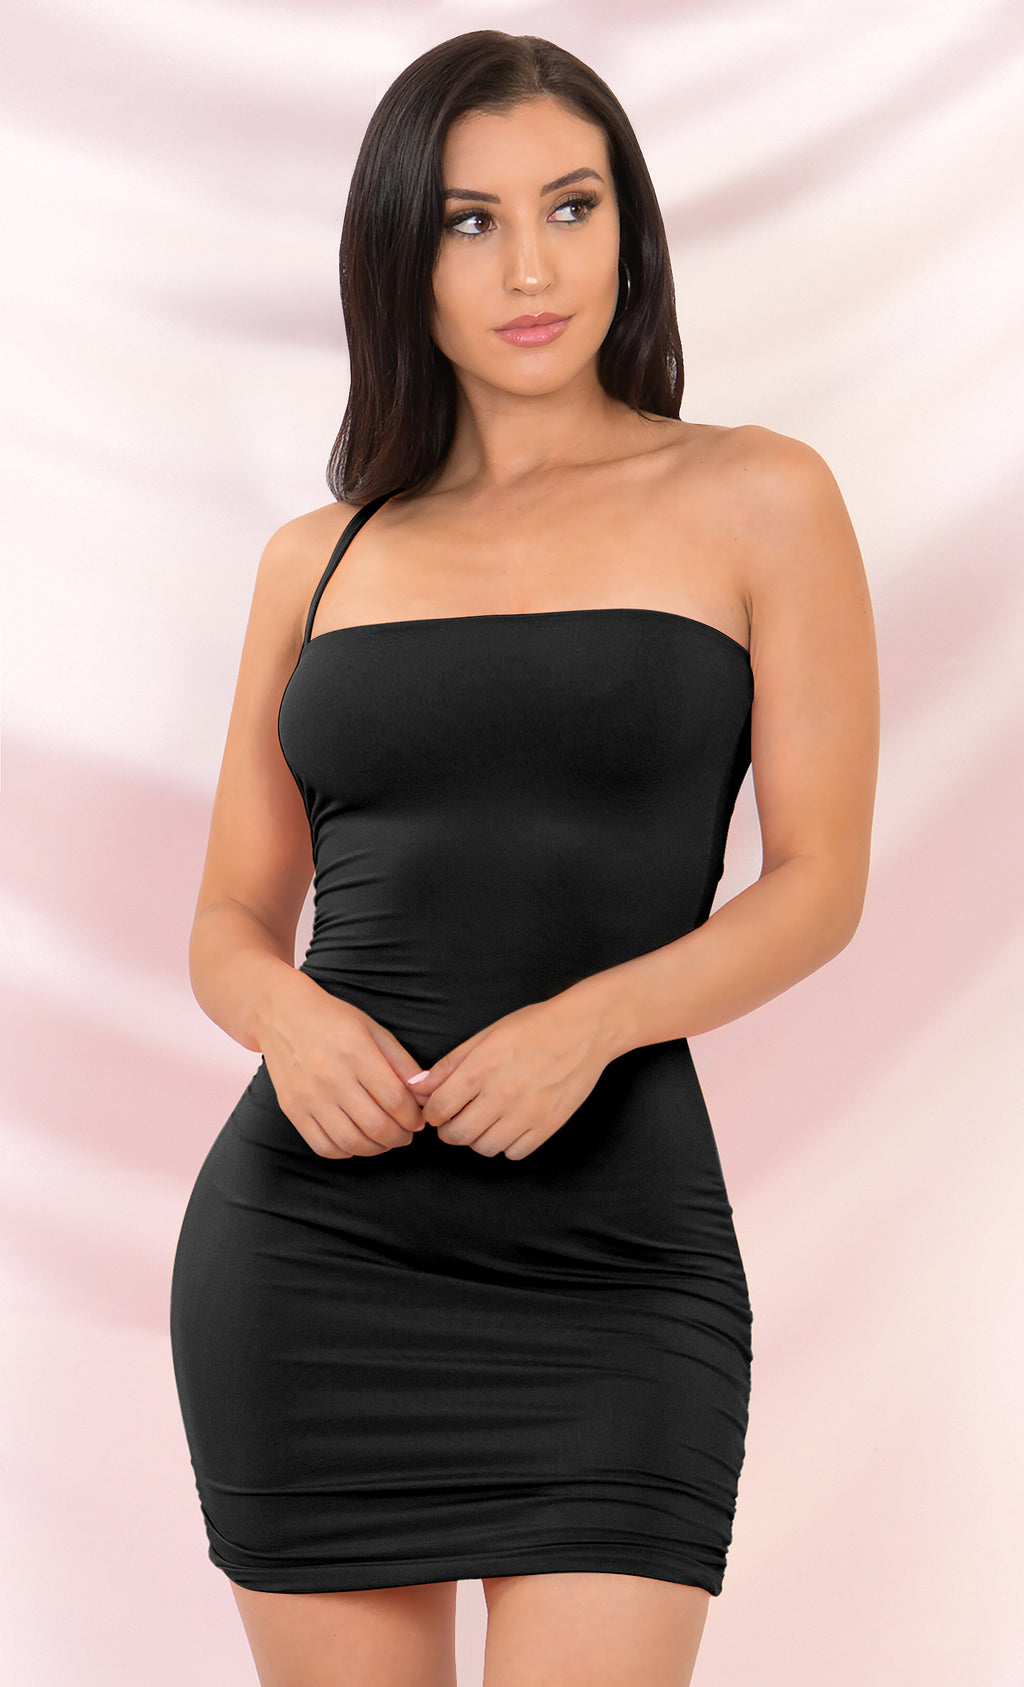 Bright Night Black Sleeveless Spaghetti Strap One Shoulder Ruched Bodycon Mini Dress - 4 Colors Available